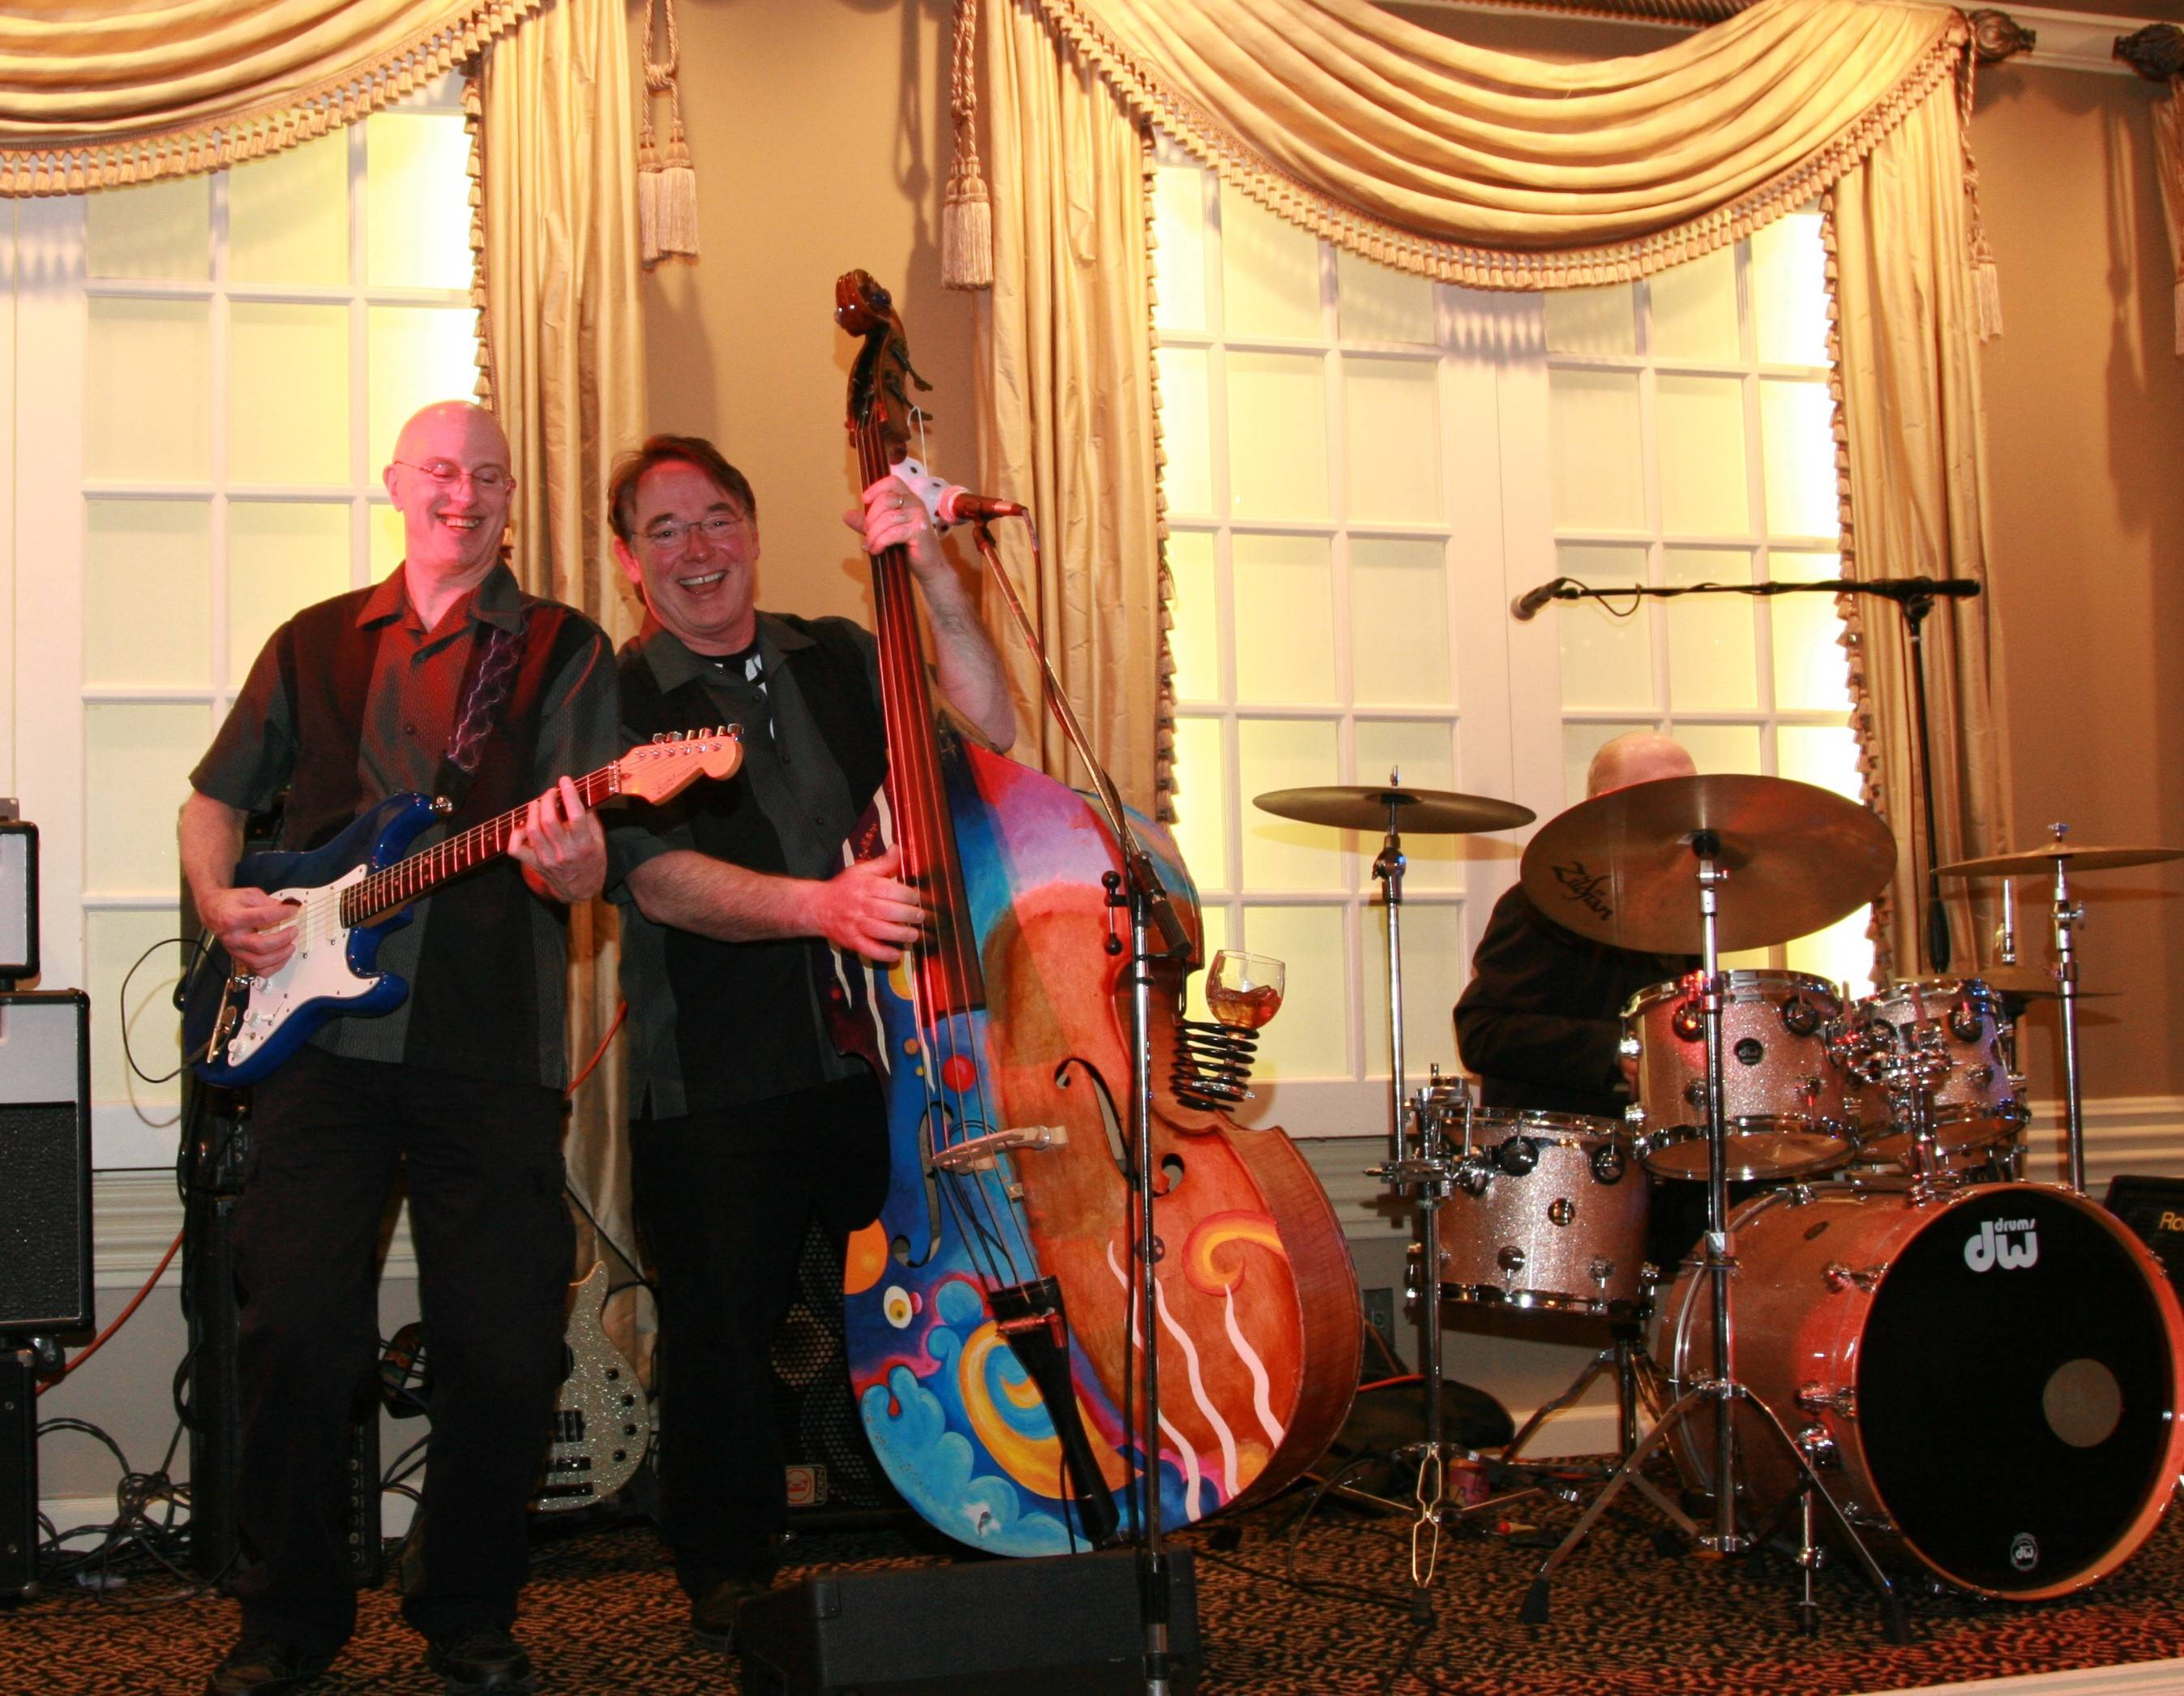 The Original Rockin' Fenderskirts will perform at the Palatine Township Senior Citizens Council fundraising gala on Saturday, Feb. 15.